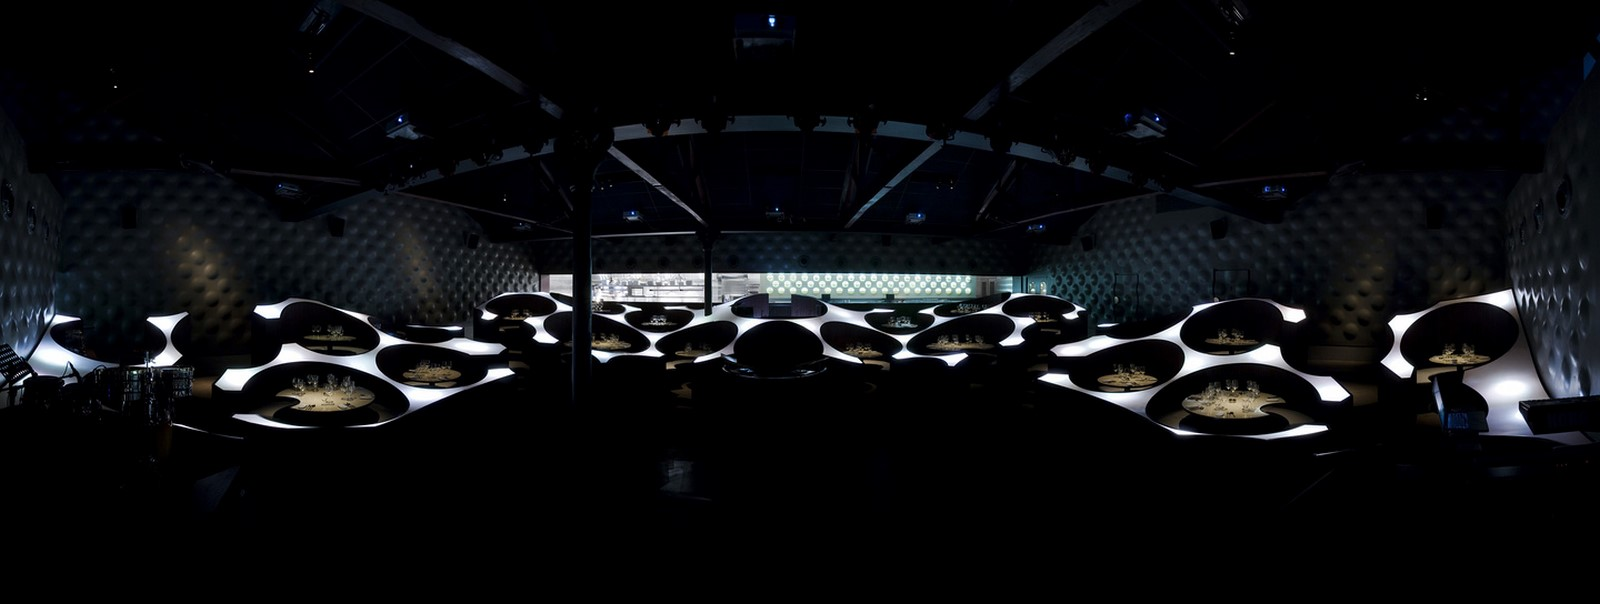 The Blue Frog Acoustic Lounge by Serie Architects: A cellular organization of circles - Sheet2